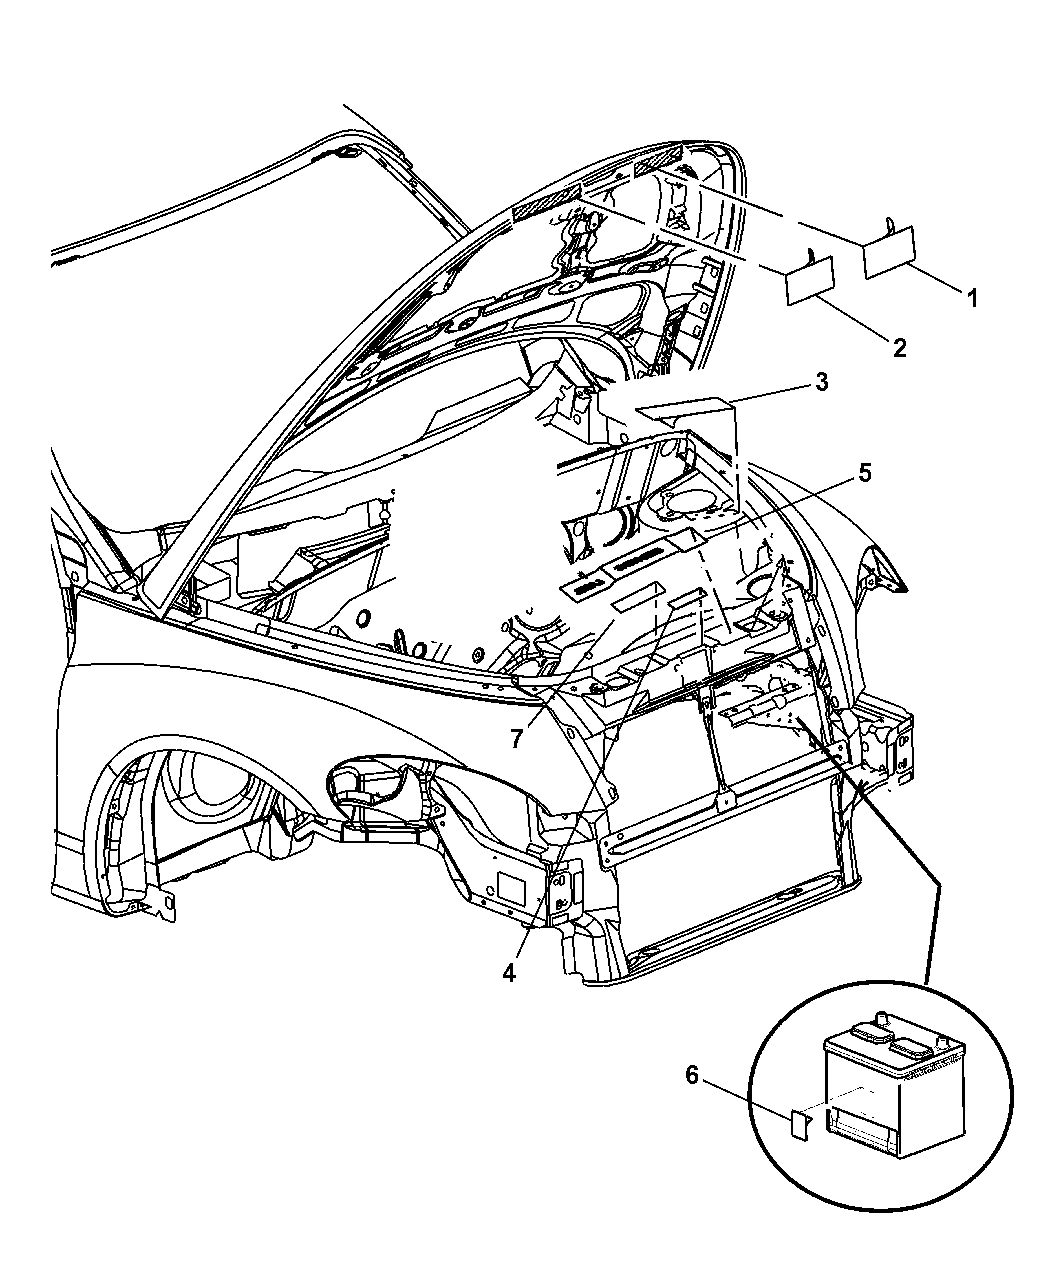 Pt Cruiser Engine Parts Diagram Free Wiring Diagram